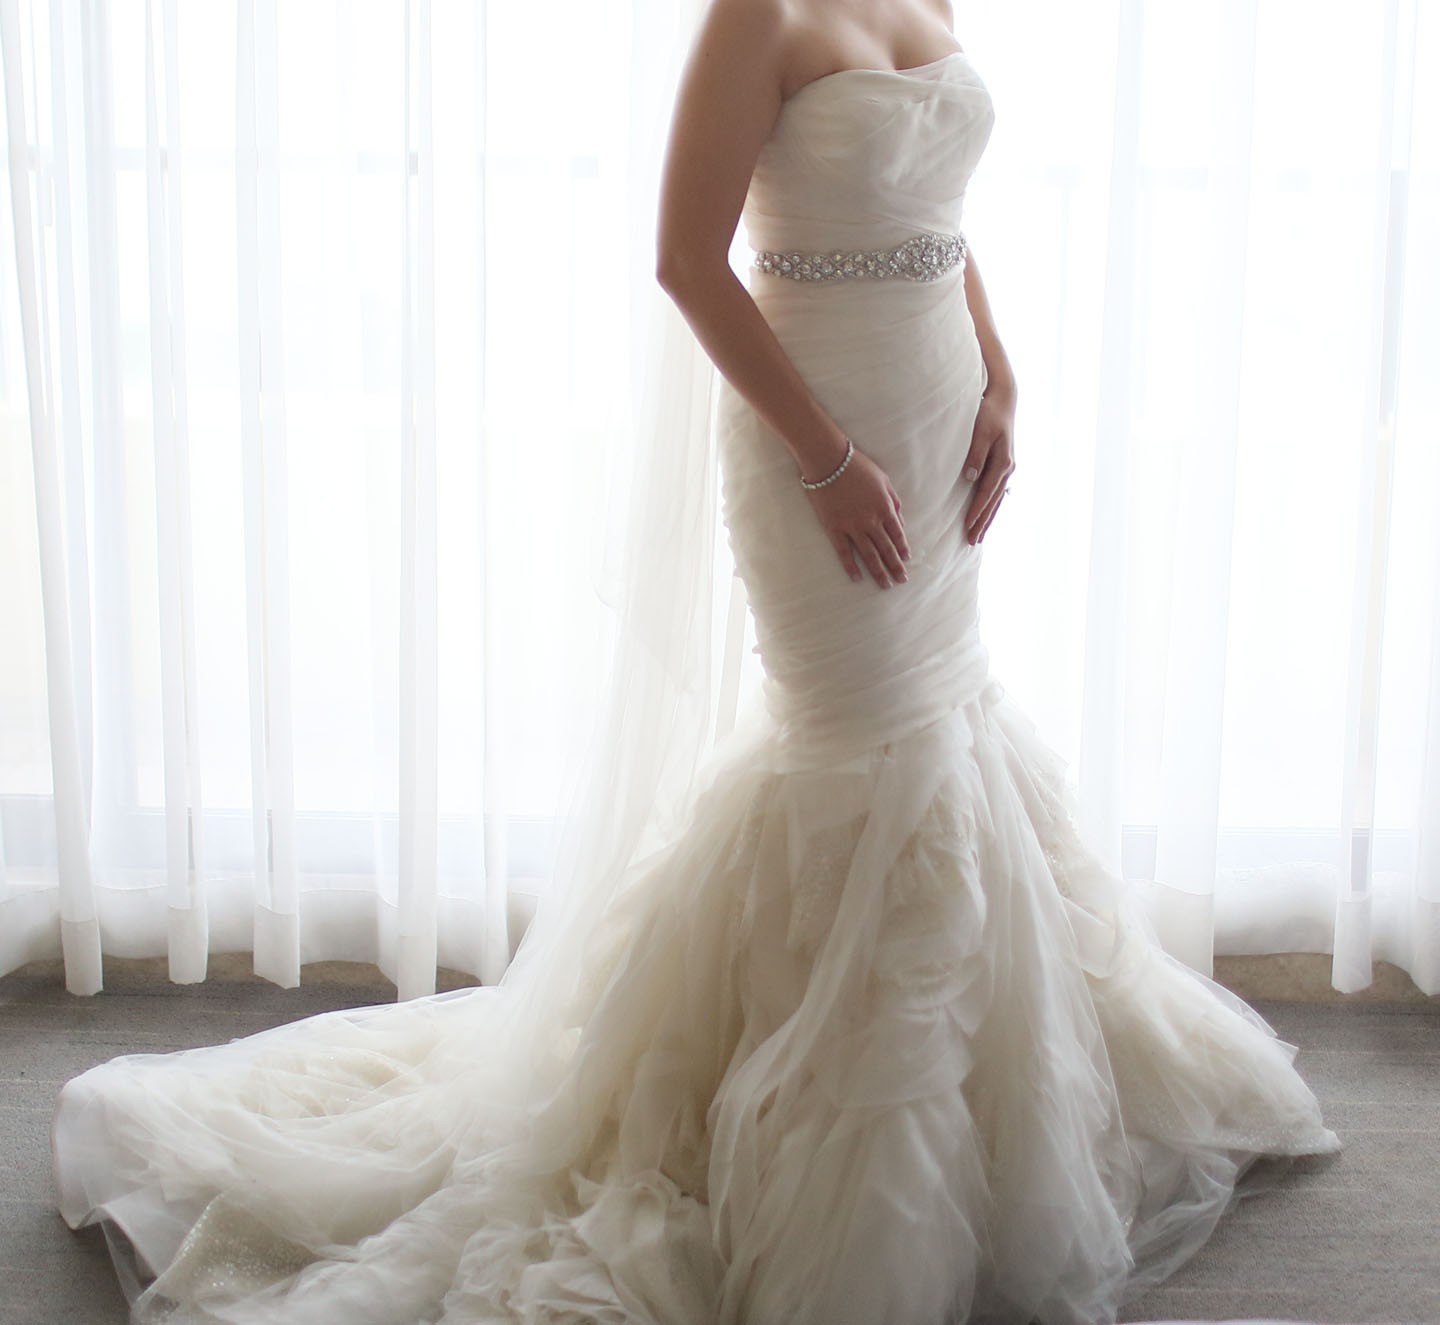 Vera wang gemma second hand wedding dress on sale 52 off for Second hand wedding dresses for sale